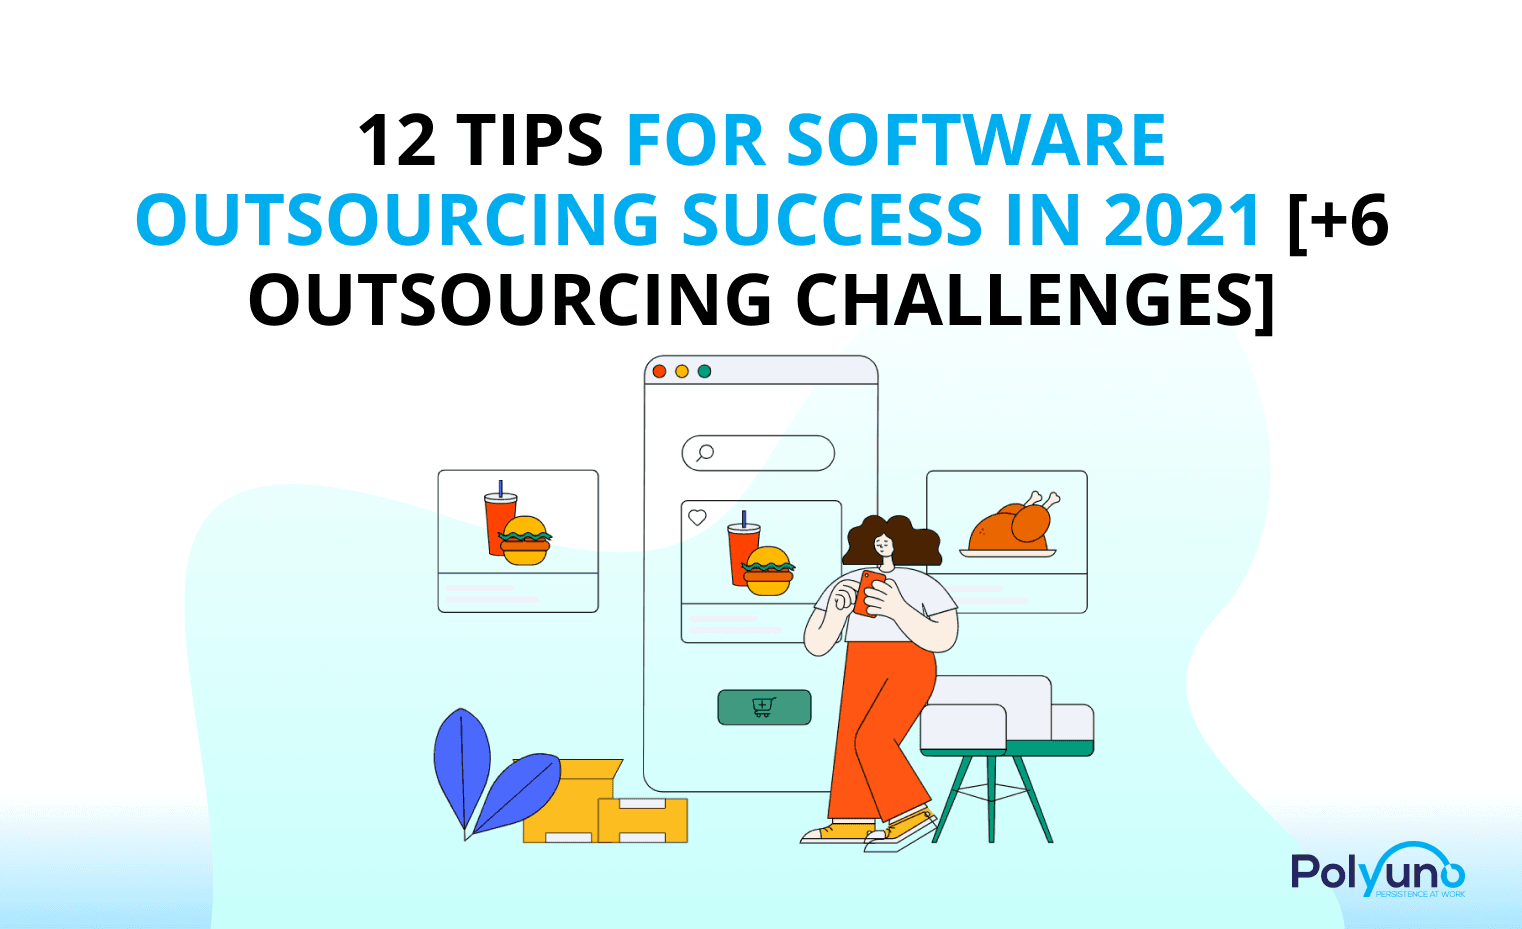 12 Tips For Software Outsourcing Success In 2021 [+6 Outsourcing Challenges]